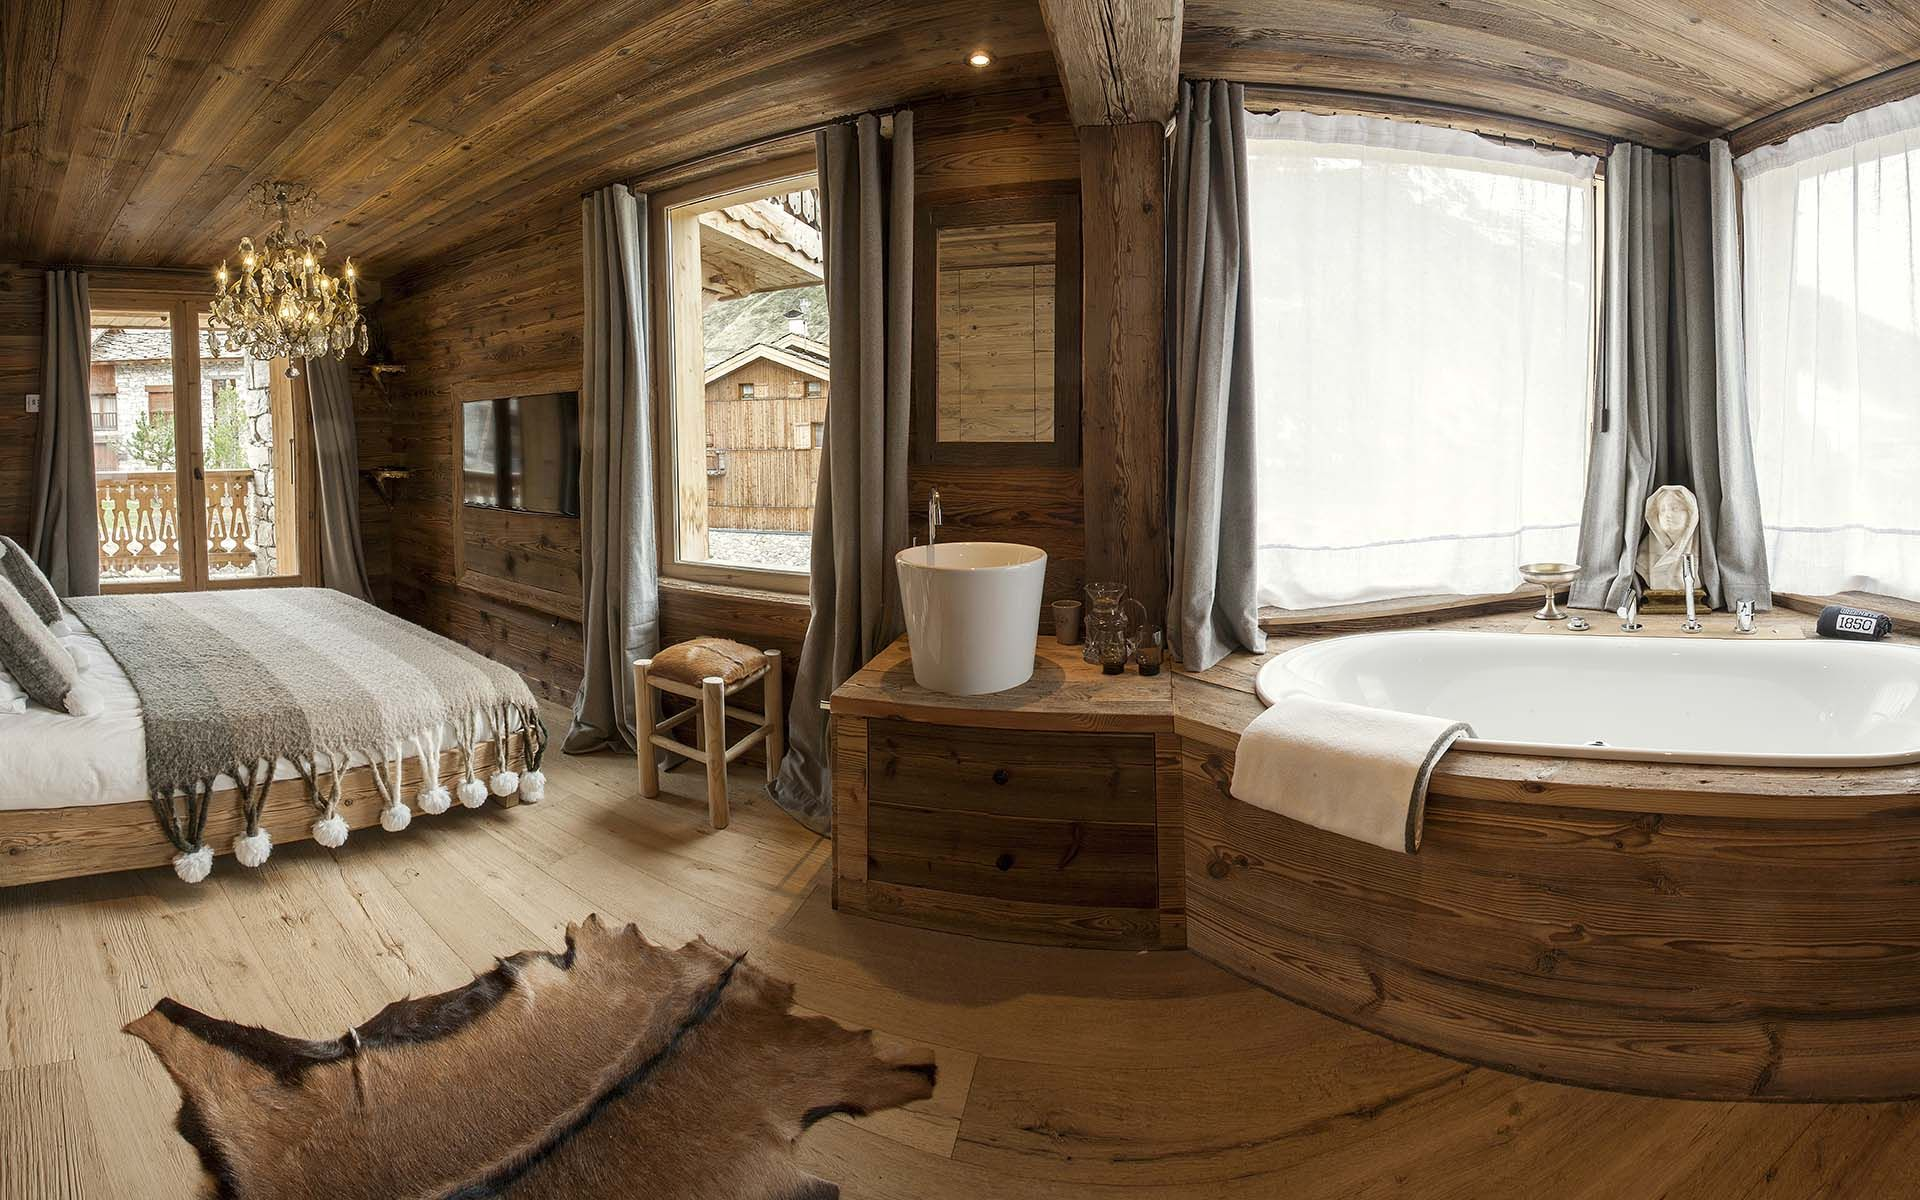 Chalet Seven Crans Montana Switzerland is a luxury ski chalet with